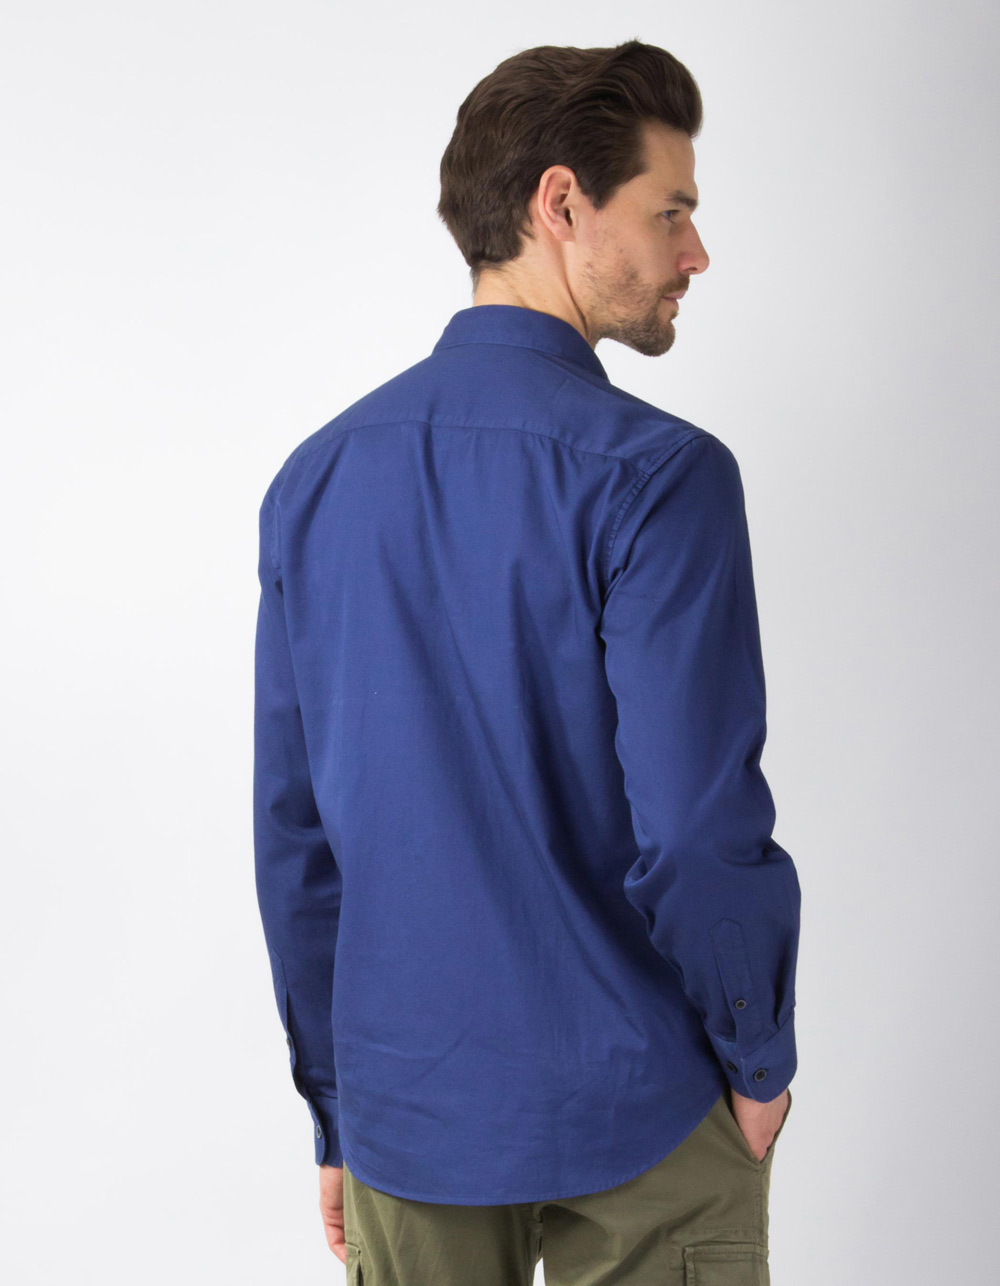 Navy blue plain shirt - Backside